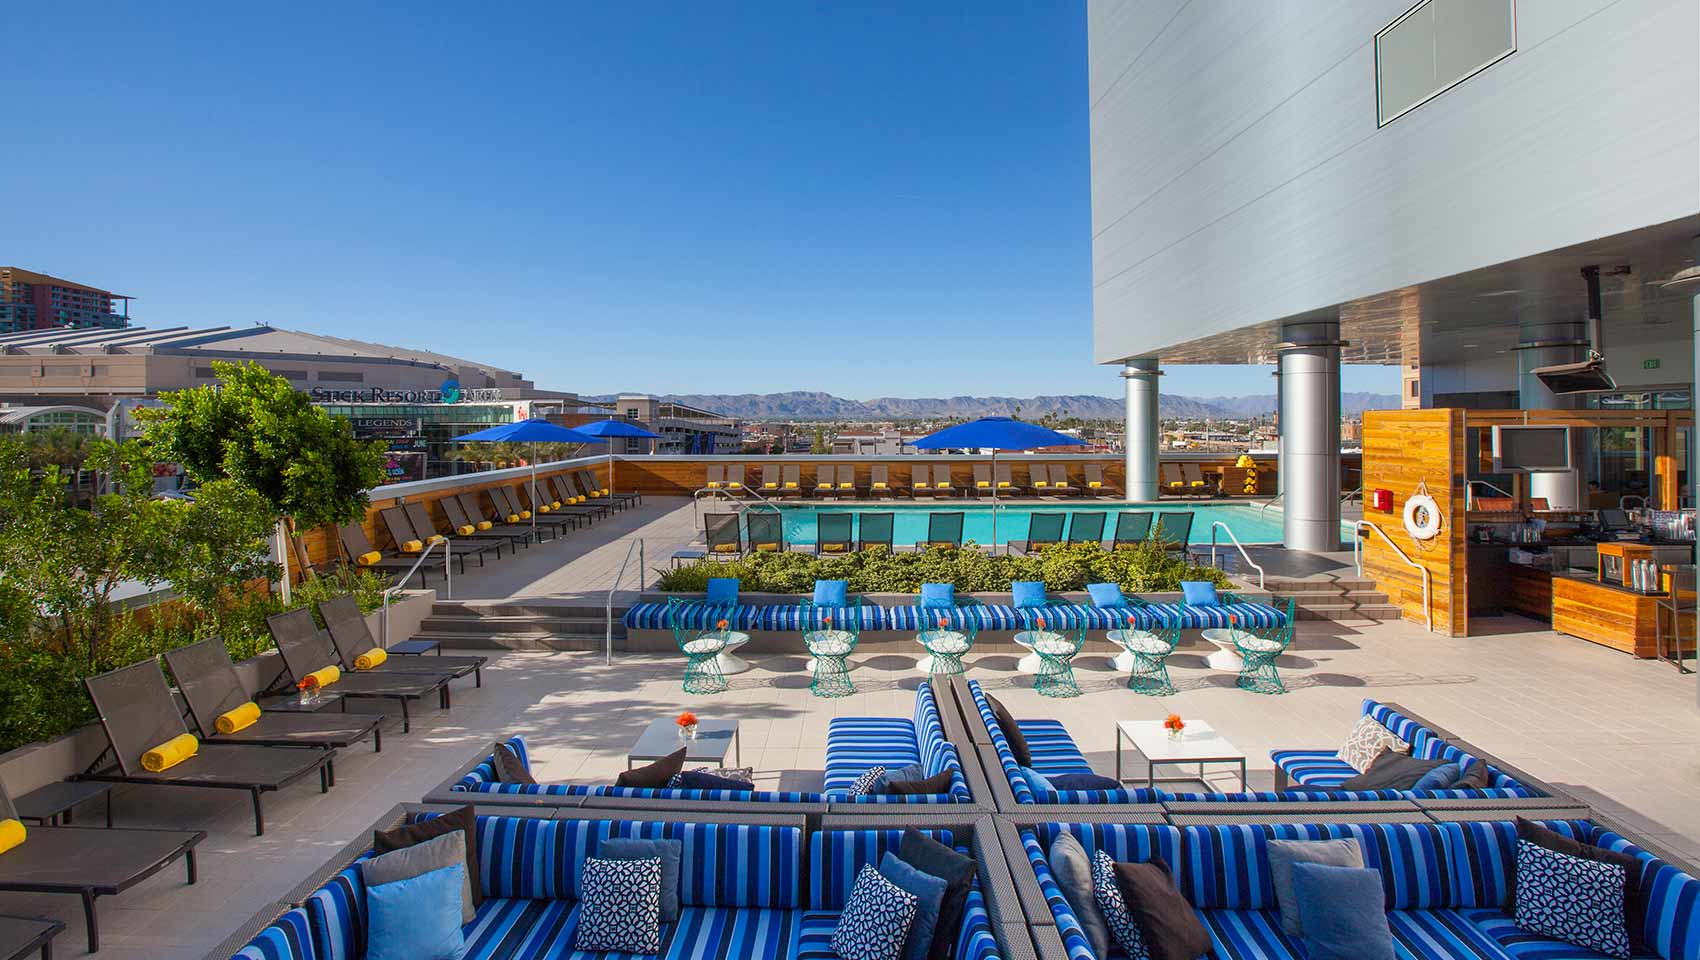 Lustre Rooftop Bar and Pool hotels in phoenix az